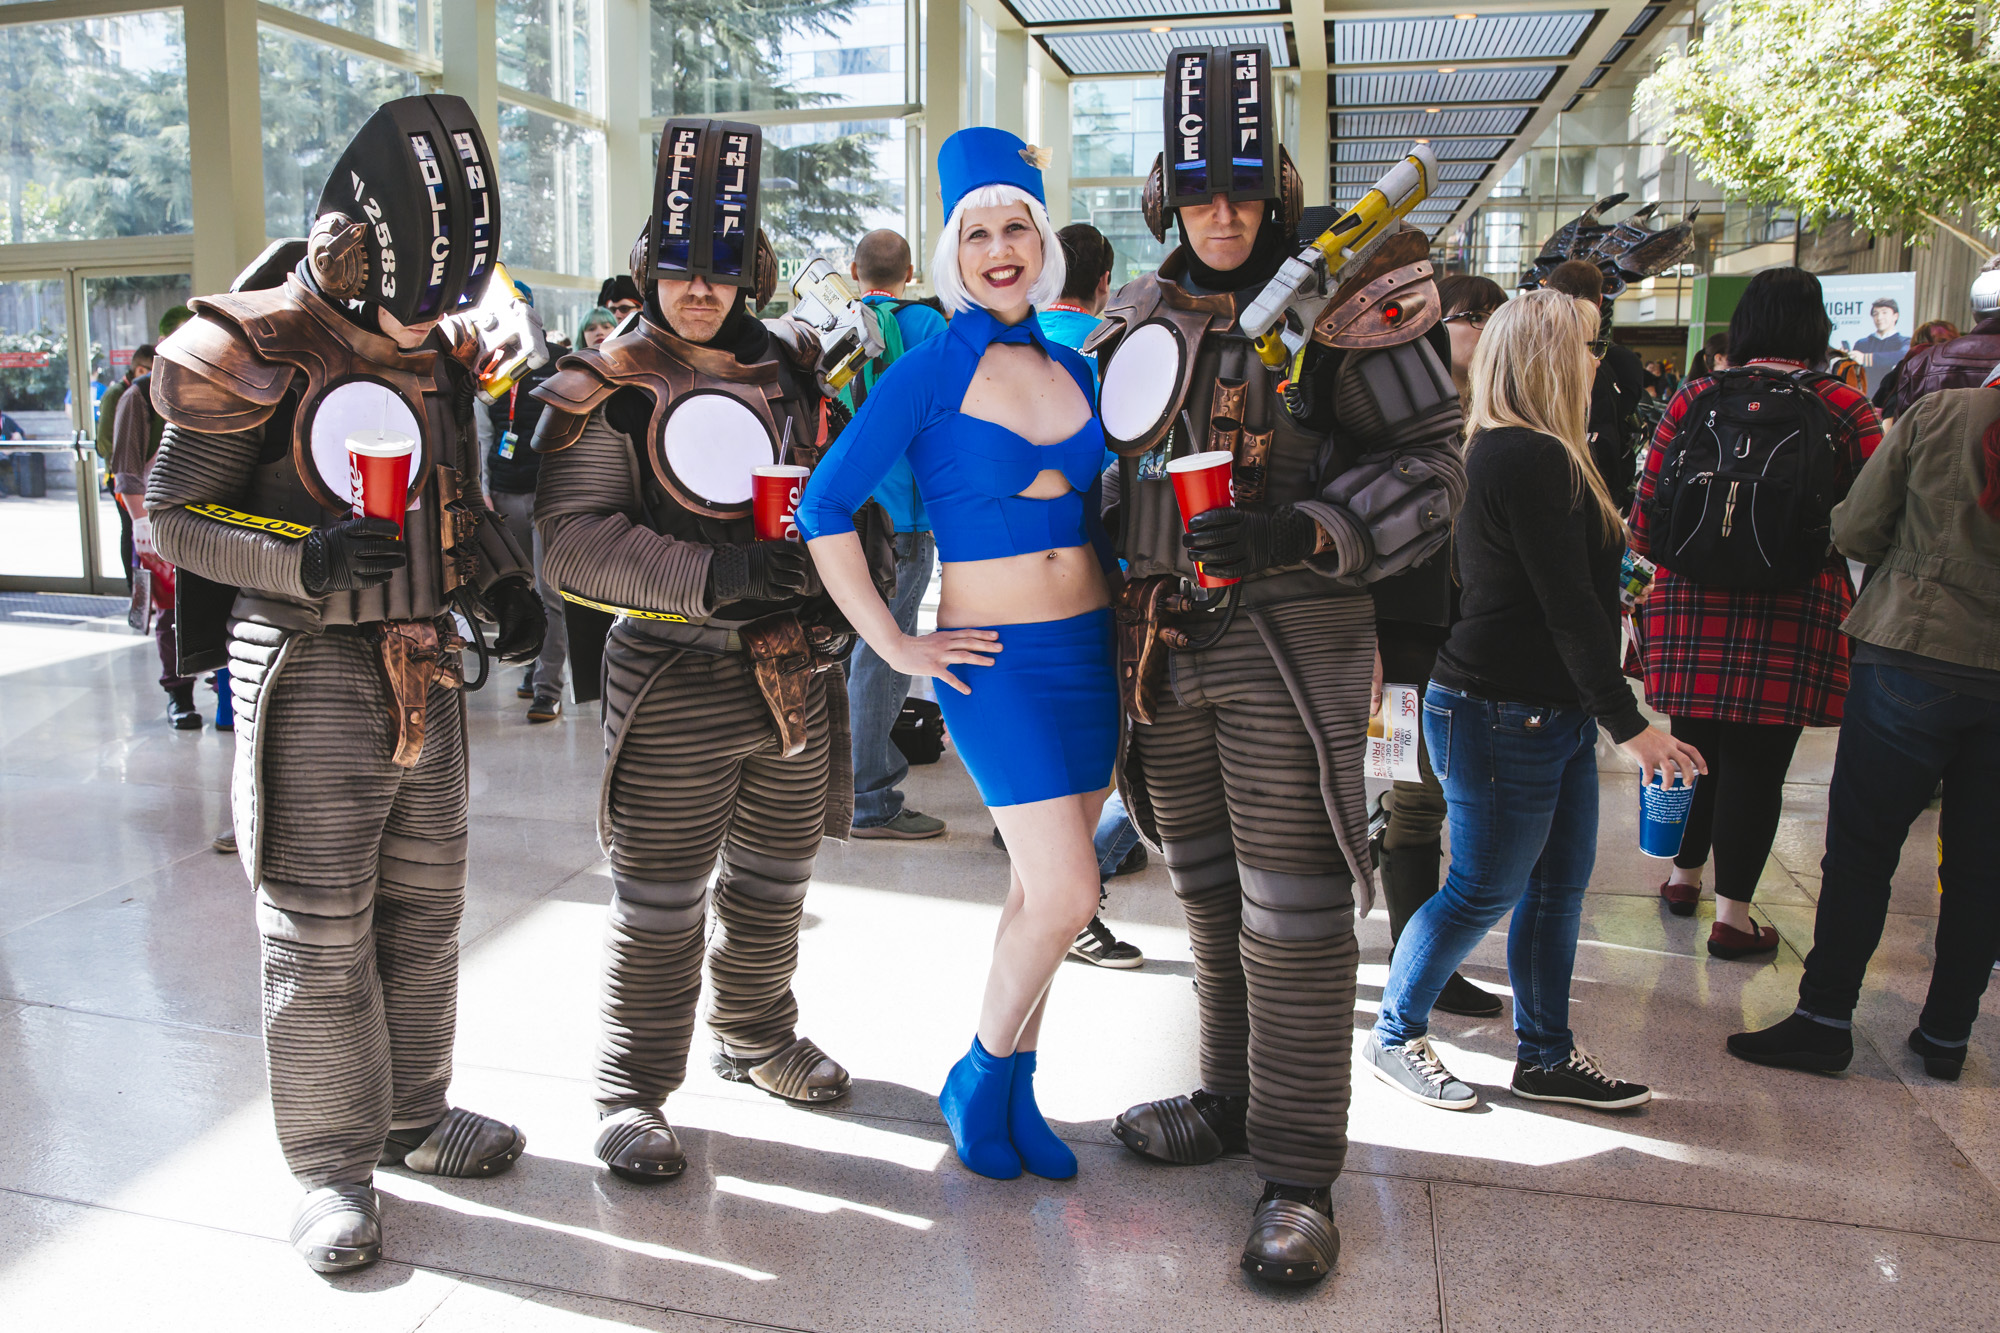 <p>Emerald City Comic Con is the largest comic book and pop culture convention in the Pacific Northwest. Thousands come to the Washington State Convention Center in Seattle for 4 days of cosplay, comic books, celebrities, panels and more. This year, they're expecting upwards of 95,000 people! Today, (March 15, 2019) marks the halfway point of ECCC. (Image: Sunita Martini / Seattle Refined){&amp;nbsp;}</p>